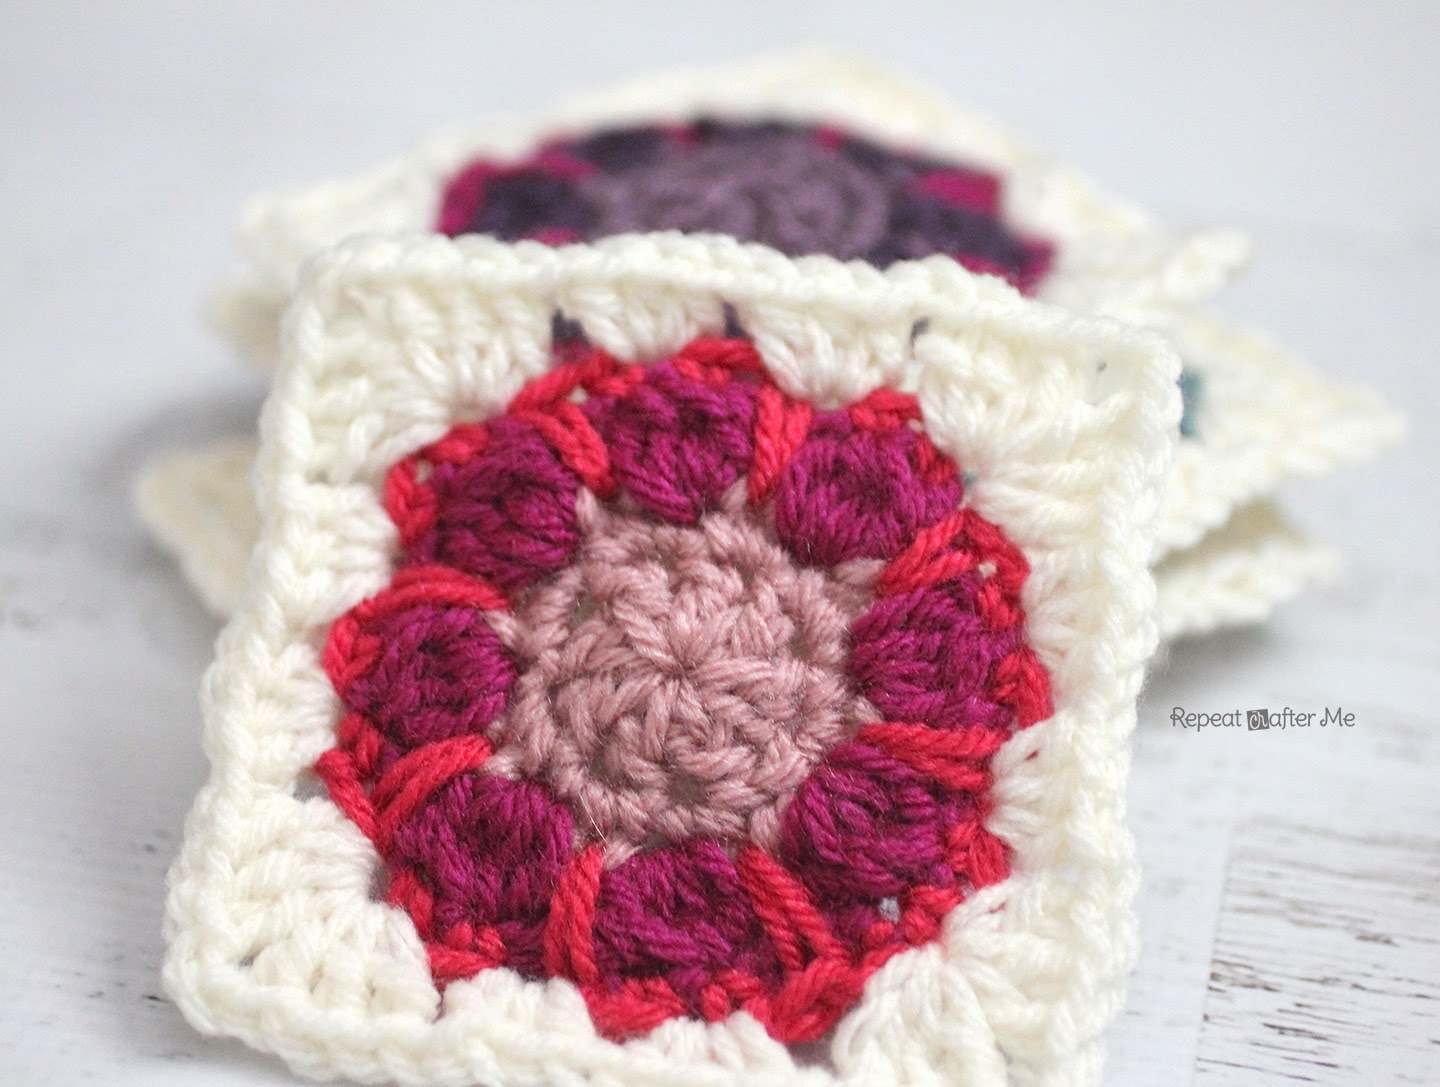 Crocheting Grandma : free crochet granny square afghan patterns Archives - Knit And Crochet ...